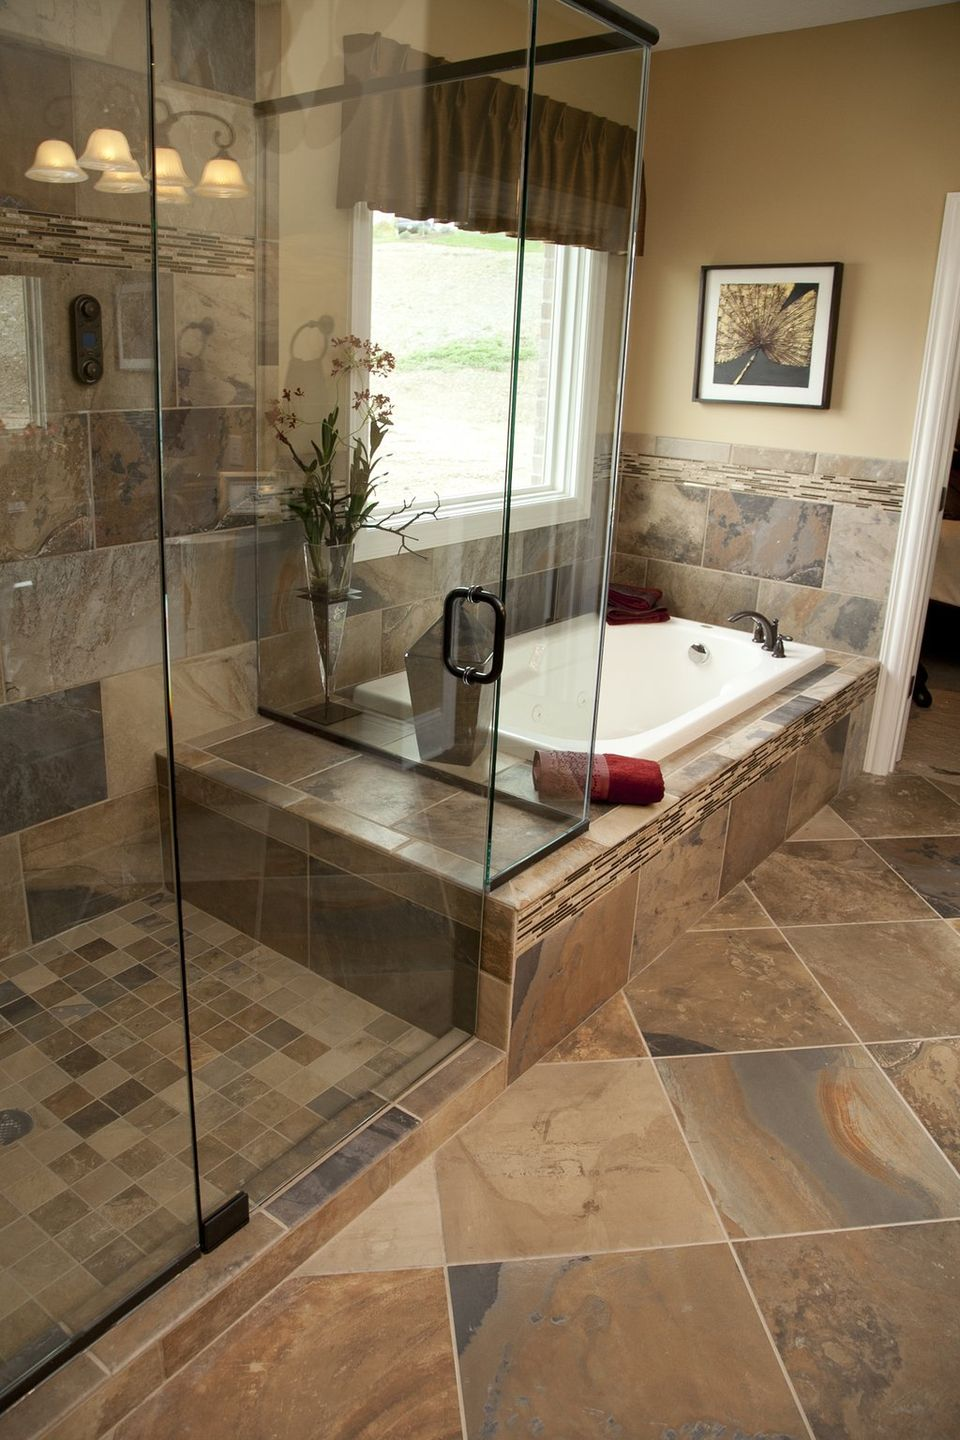 33 stunning pictures and ideas of natural stone bathroom for Bathroom porcelain tile designs